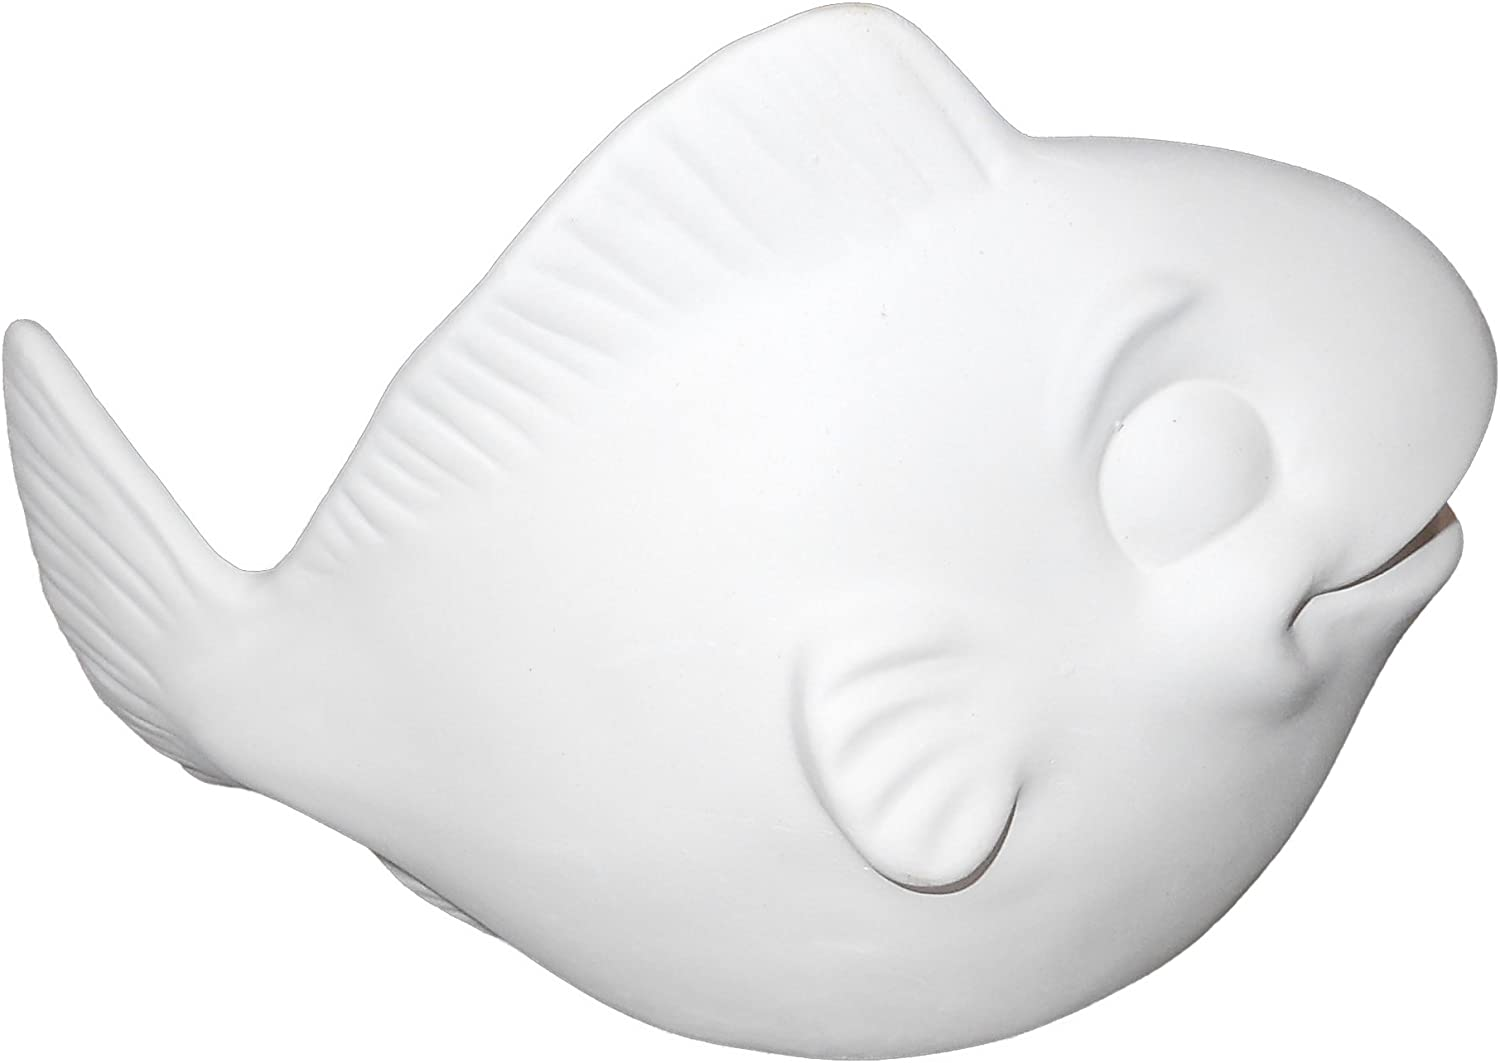 The Lovable Tang Fish Paint Your Own Under The Sea Ceramic Keepsake